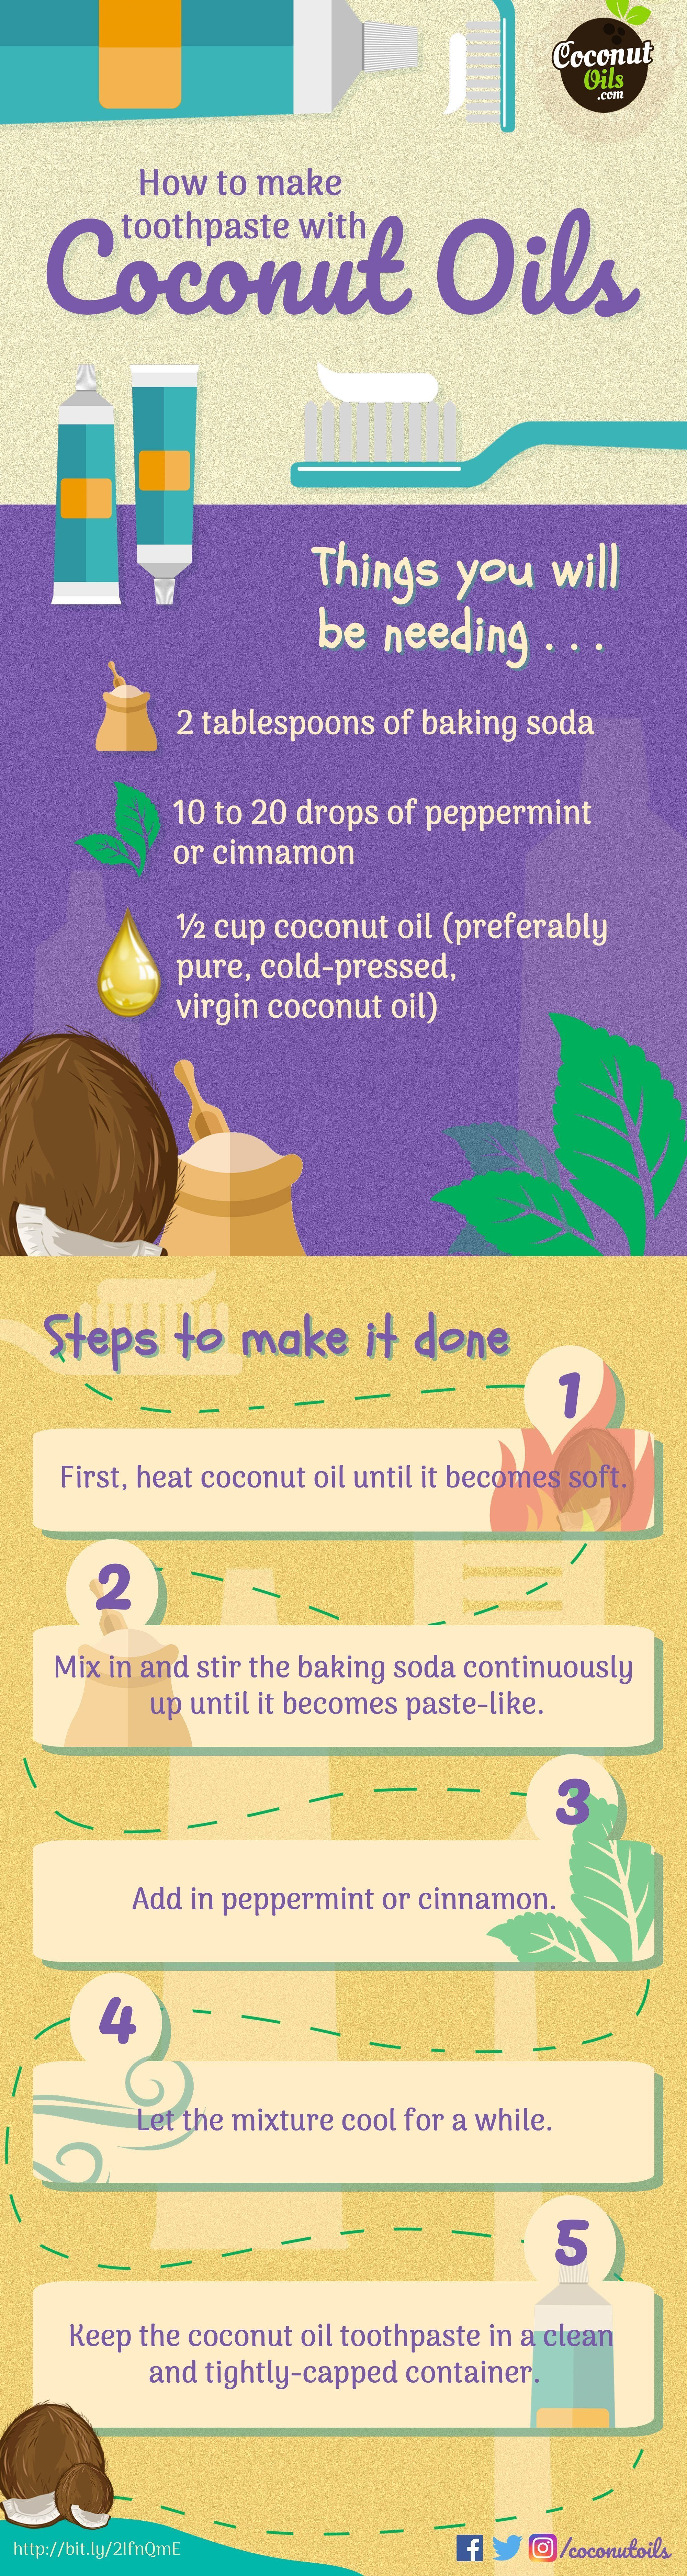 Toothpaste with organic Coconut Oil